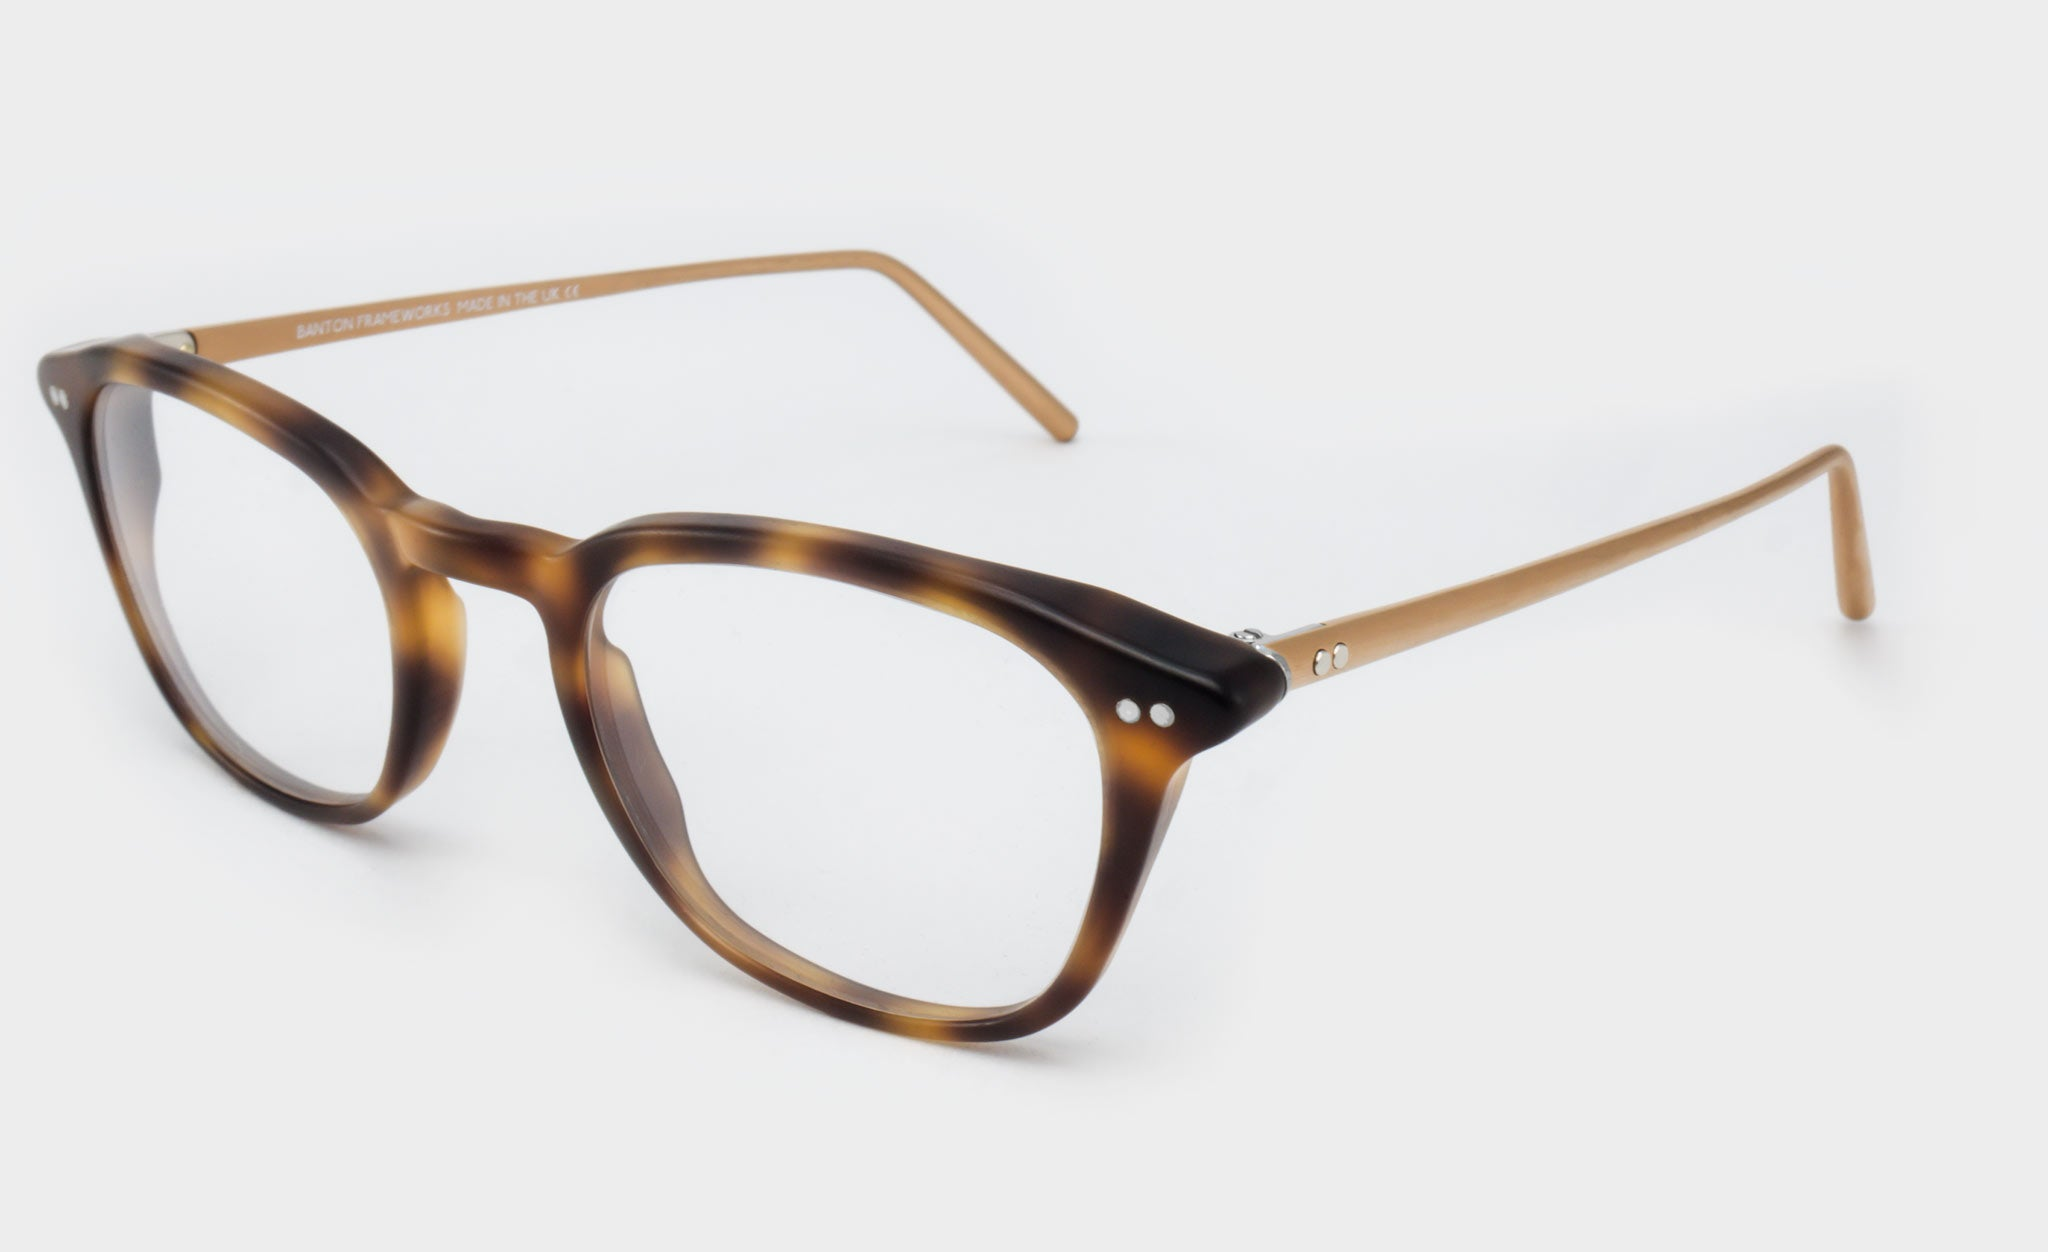 Varifocal-Tortoiseshell-rectangle-frame-glasses-Side-View